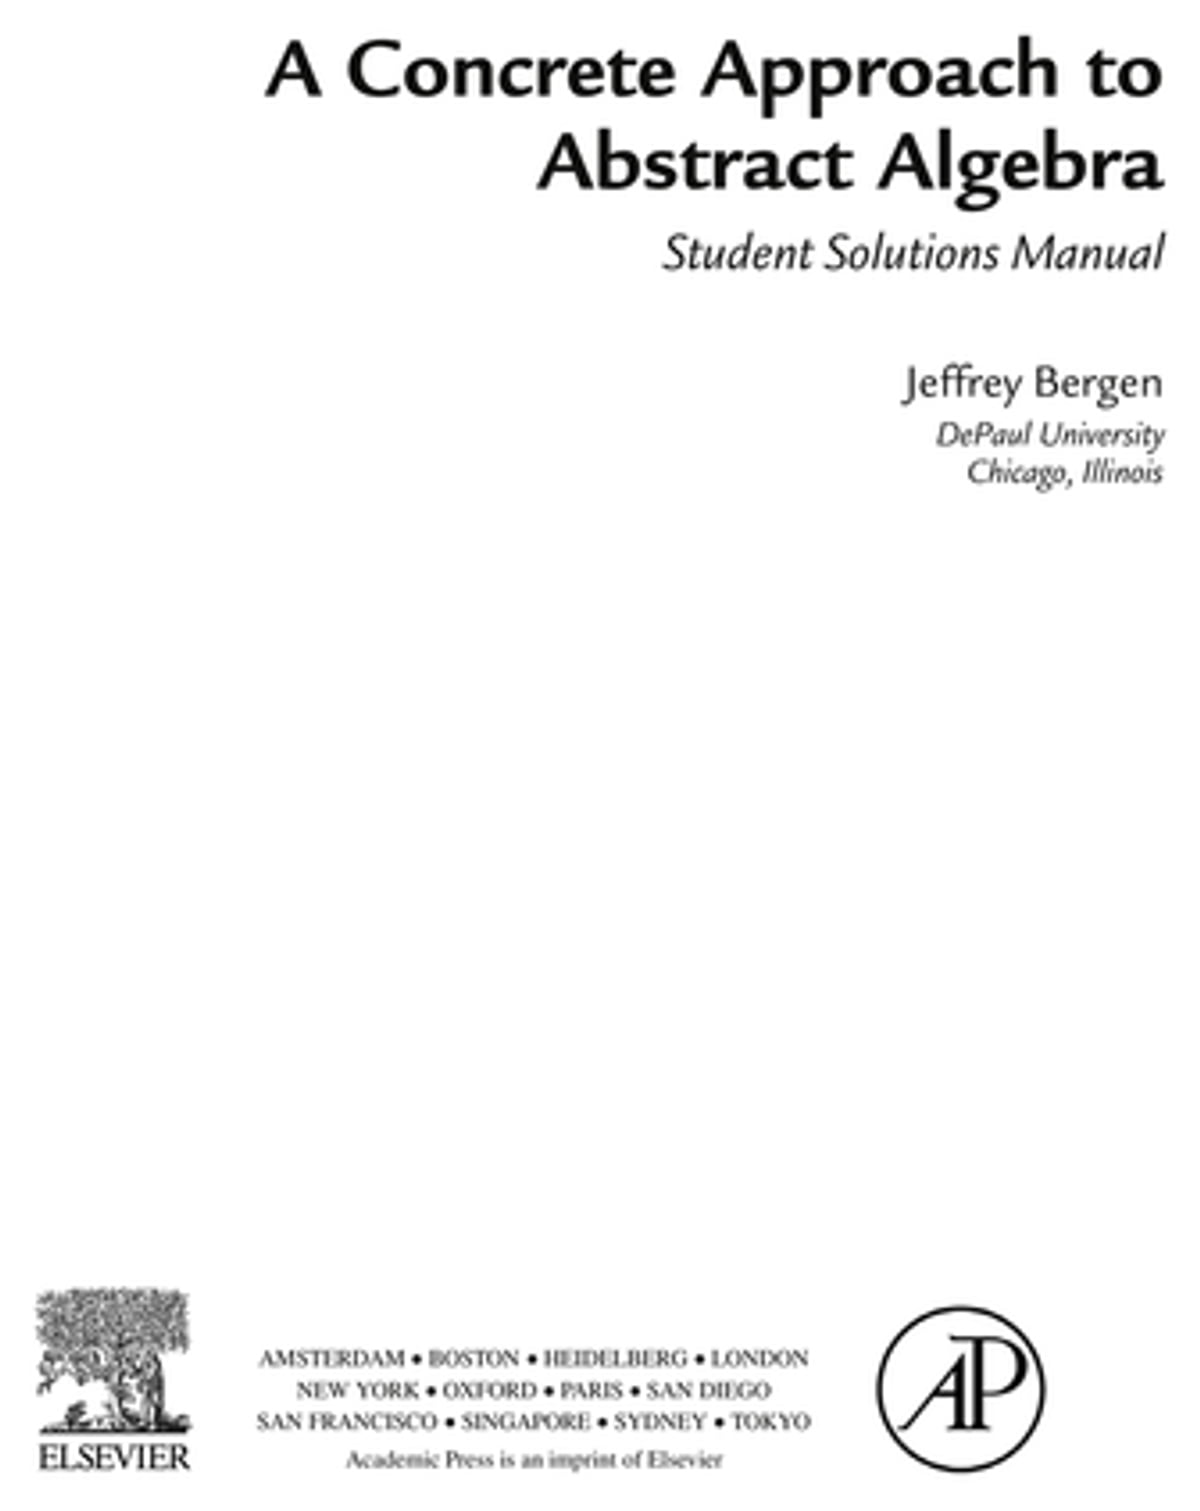 A Concrete Approach To Abstract Algebra,Student Solutions Manual (e-only)  eBook by Jeffrey Bergen - 9780123846815 | Rakuten Kobo